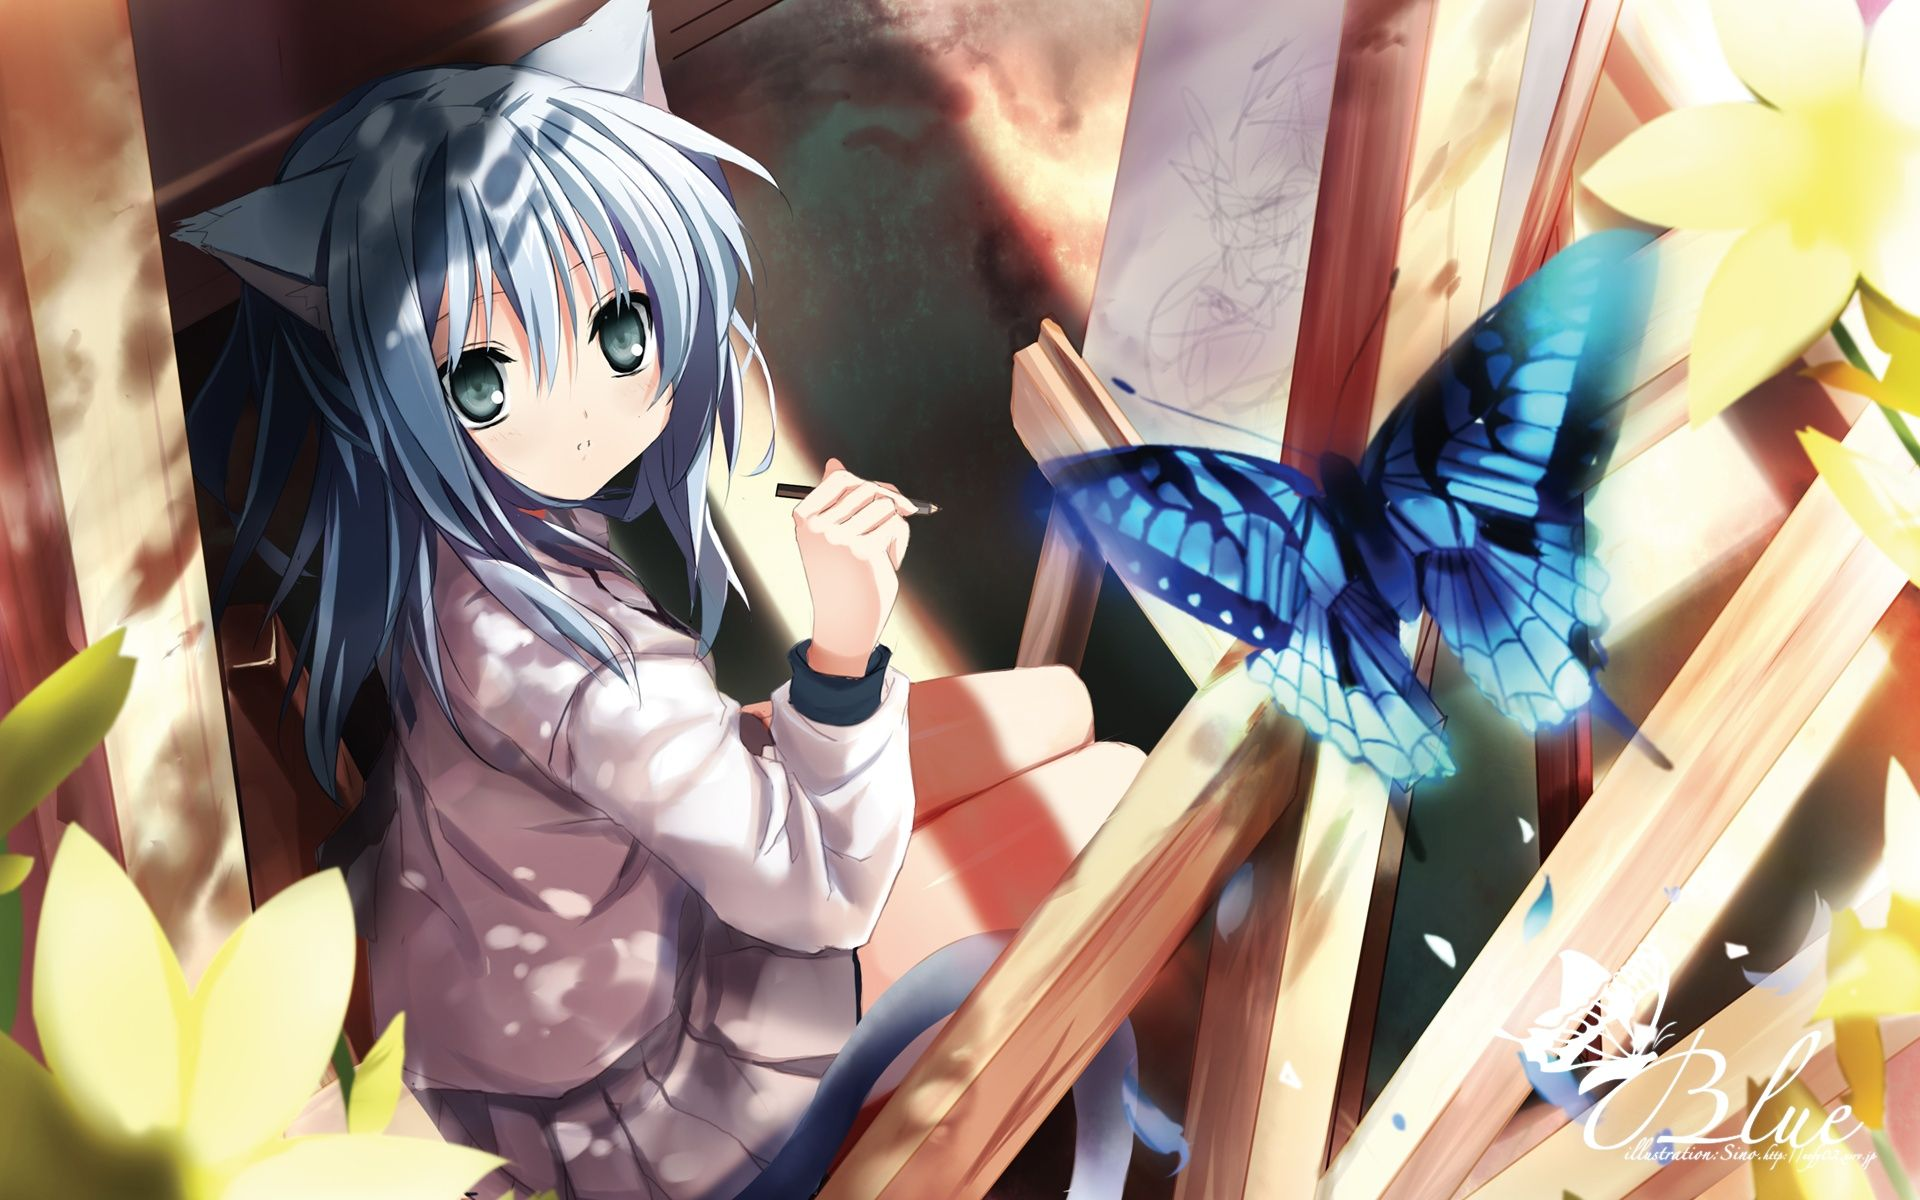 Anime Neko Girl Wallpapers Top Free Anime Neko Girl